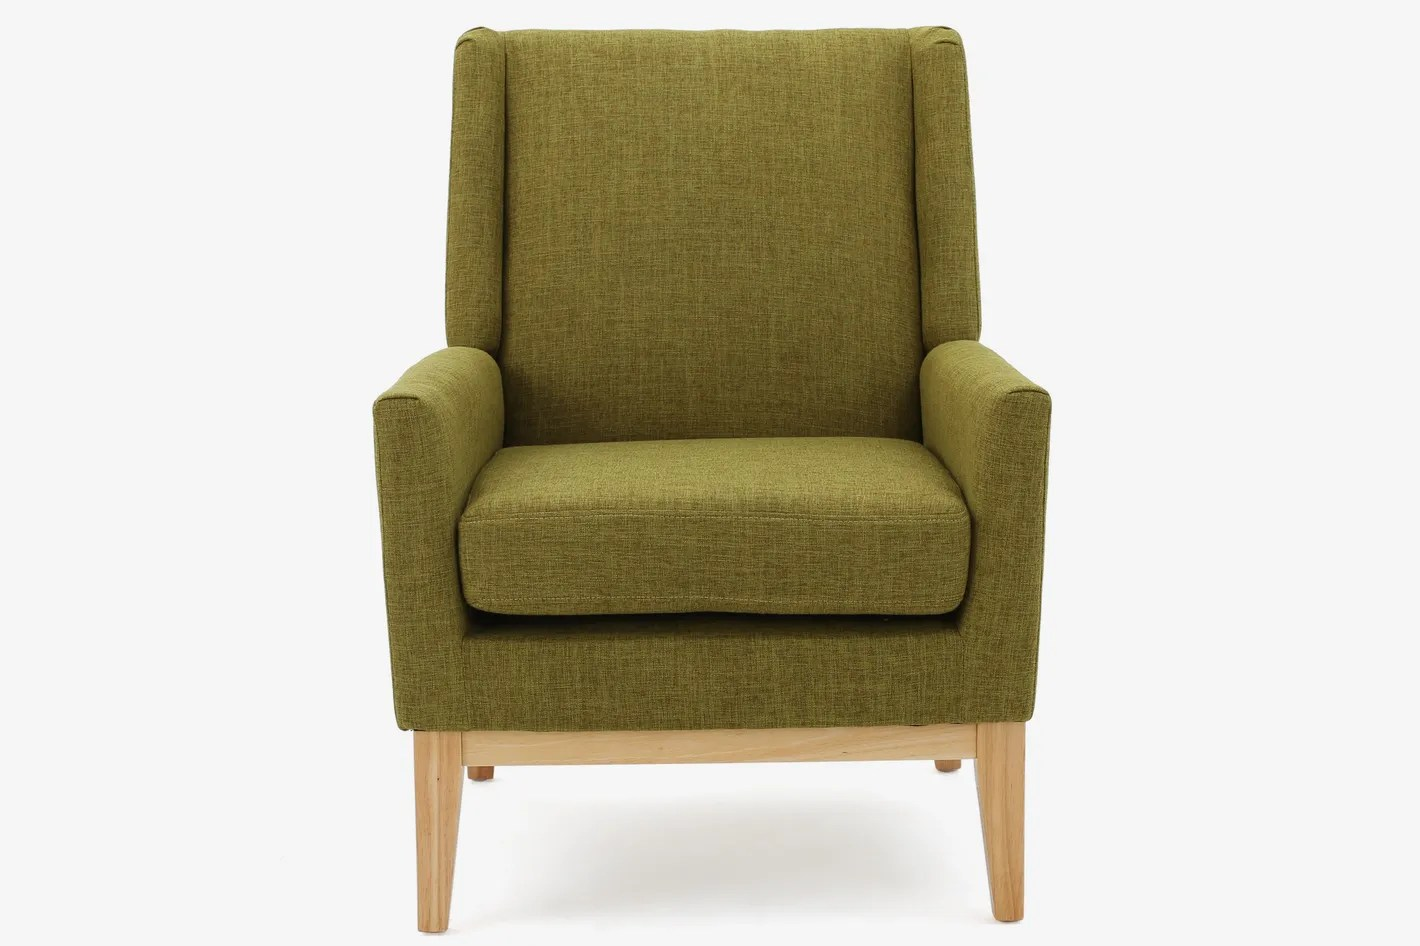 accent chairs on sale bride and groom chair at walmart 2018